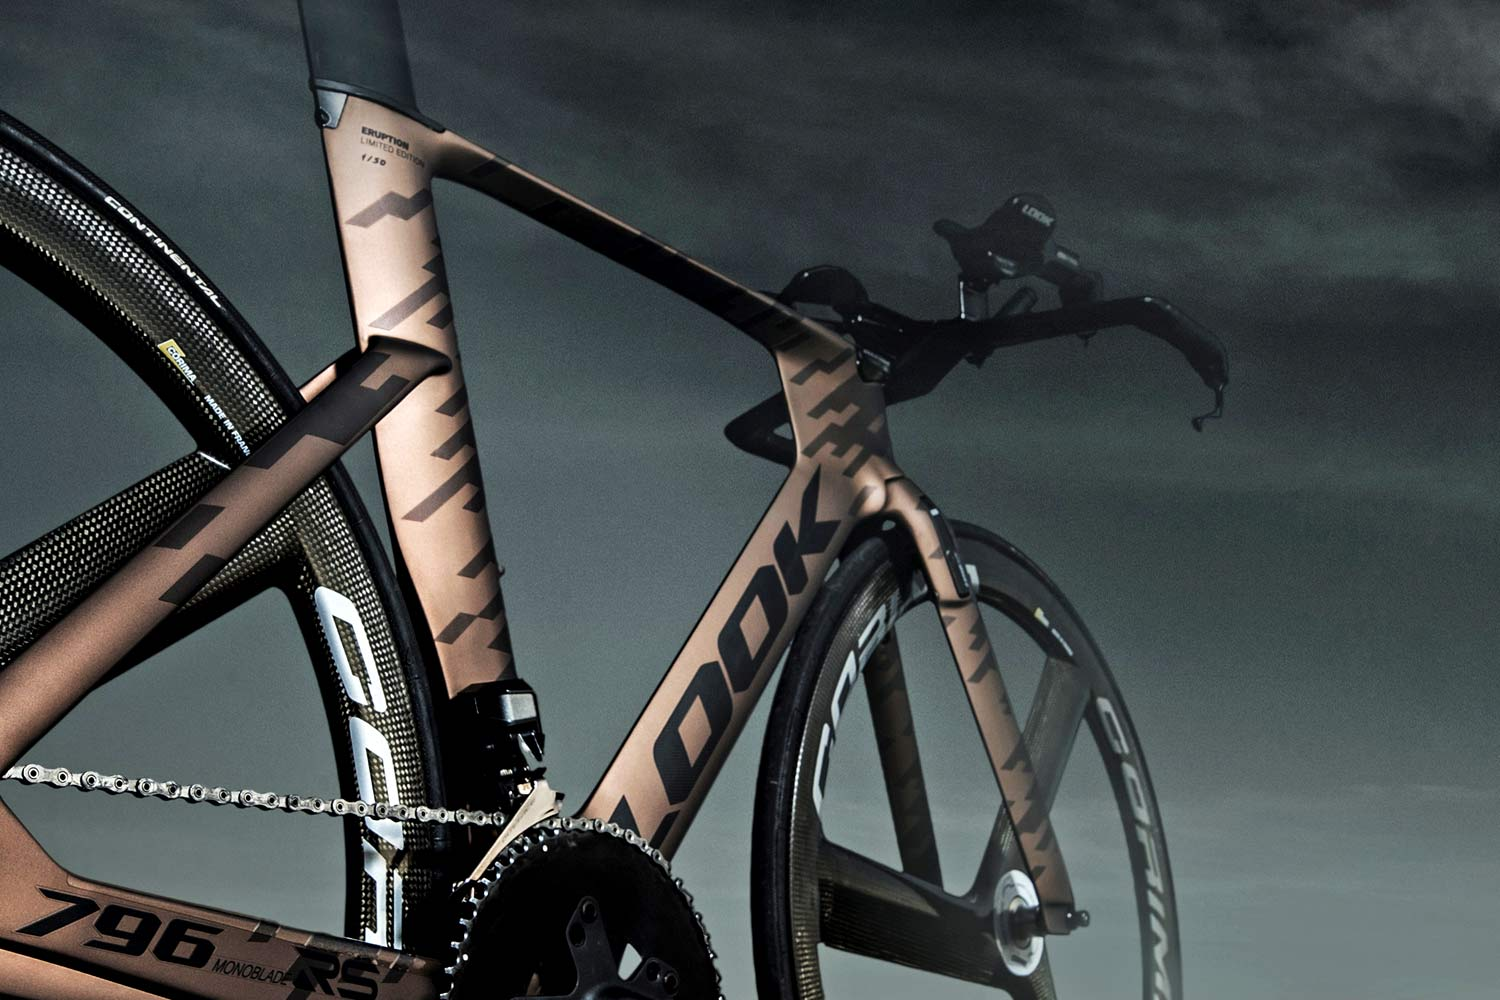 Look-Eruption-796-Monoblade-RS-TT-bike_limited-edition-Odyssey-series-time-trial-triathlon-frameset_angled-rear.jpg